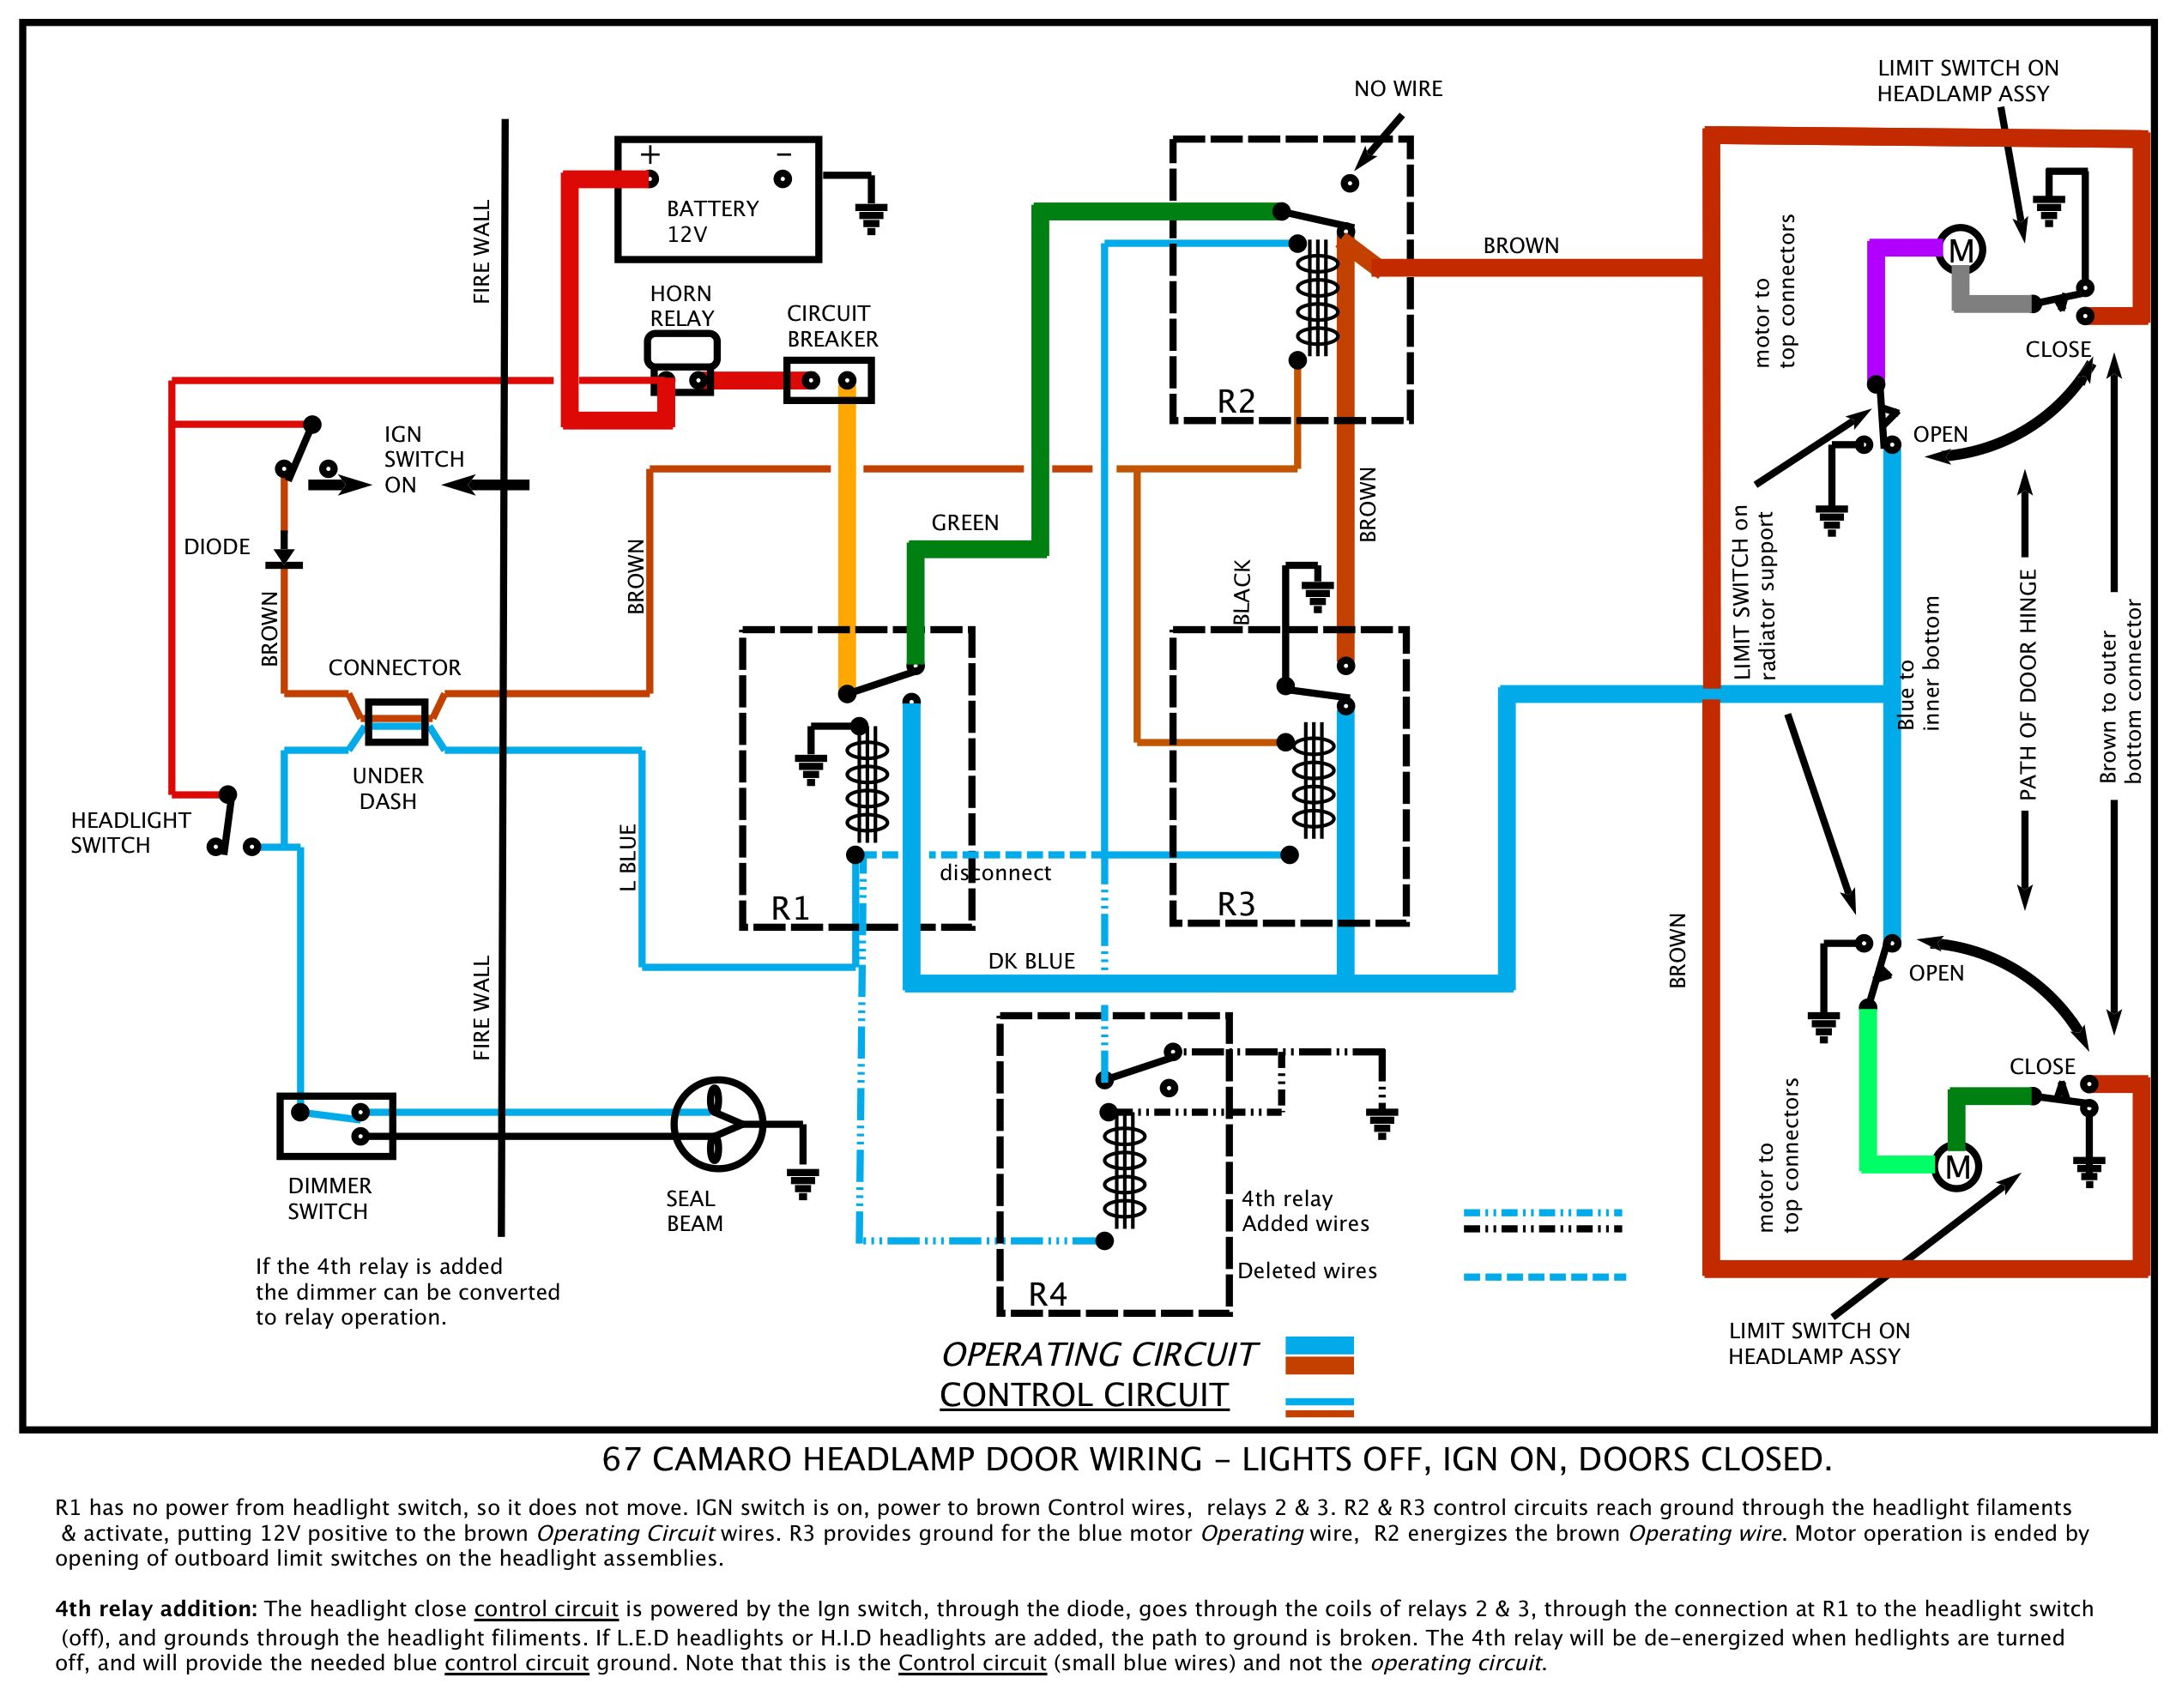 [NRIO_4796]   TG_8453] Headlight Wiring Diagram Also Check This Picture For Relay Wiring  Schematic Wiring | 240sx Headlight Relay Wiring Diagram |  | Weasi Terst Ophag Embo Osuri Hendil Mohammedshrine Librar Wiring 101